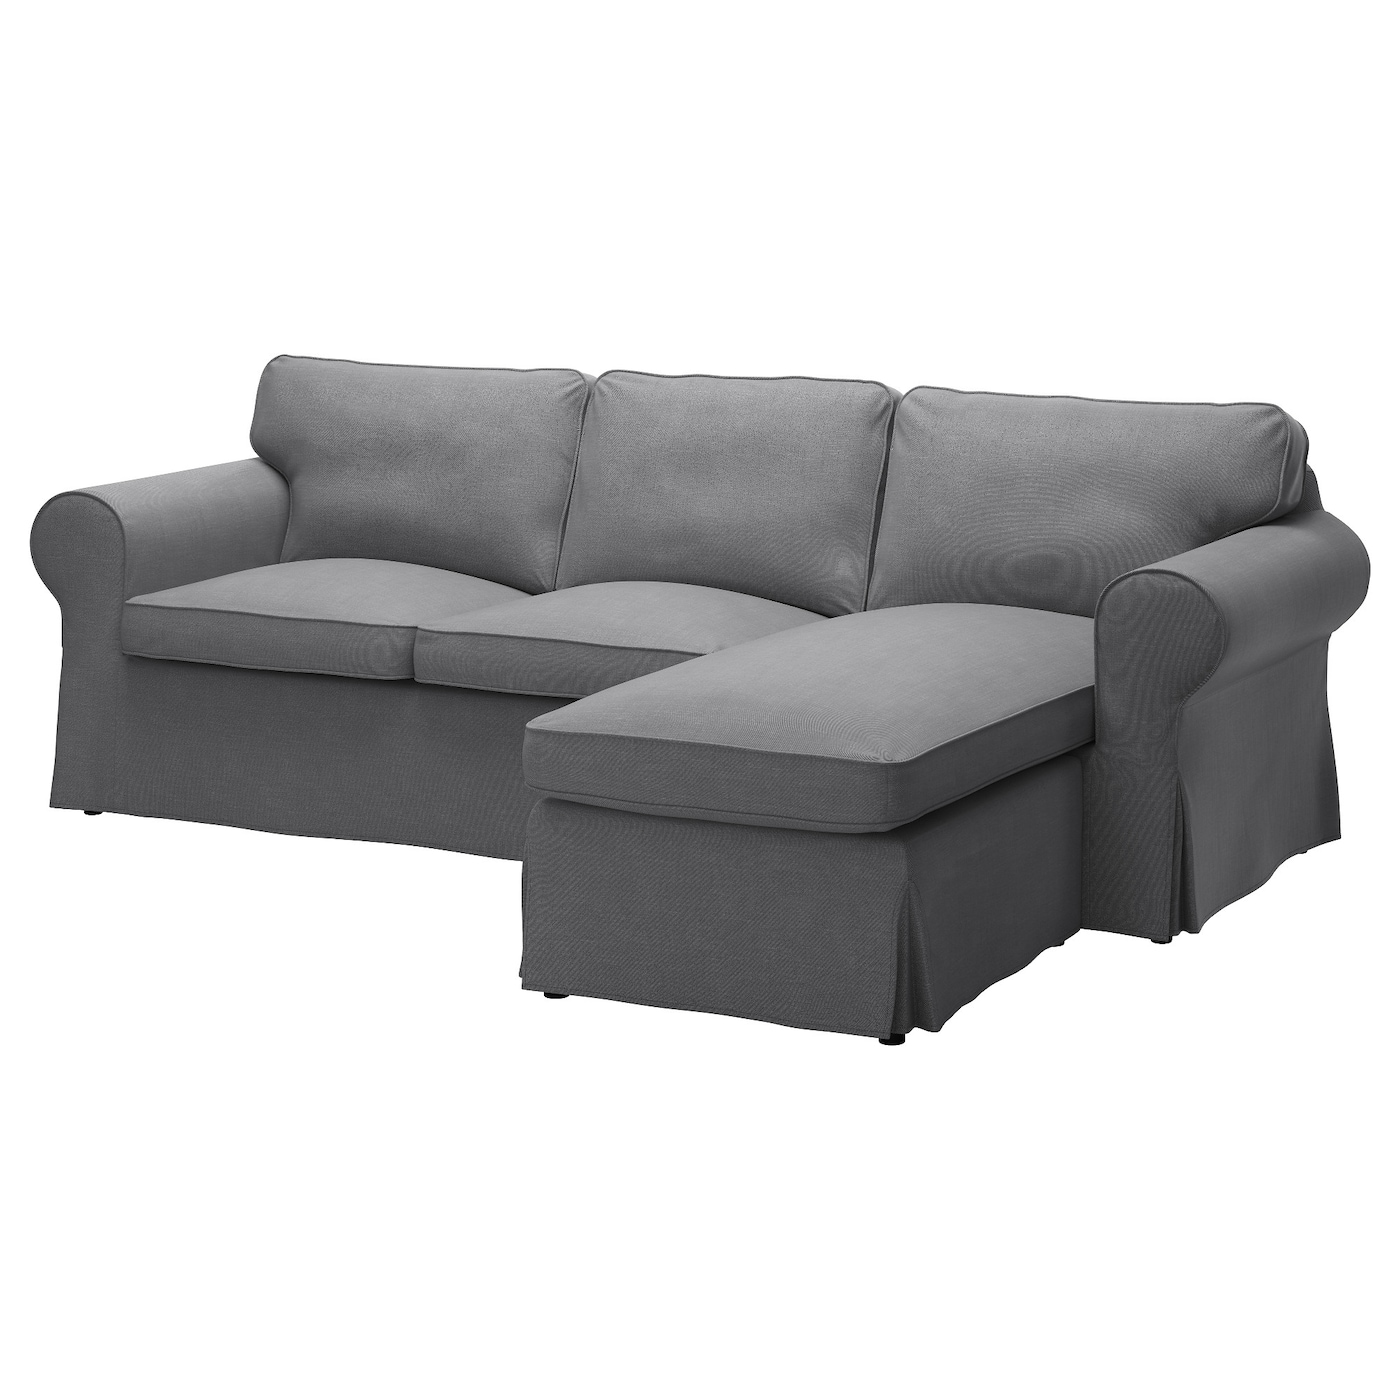 IKEA EKTORP 3-seat sofa 10 year guarantee. Read about the terms in the guarantee brochure.